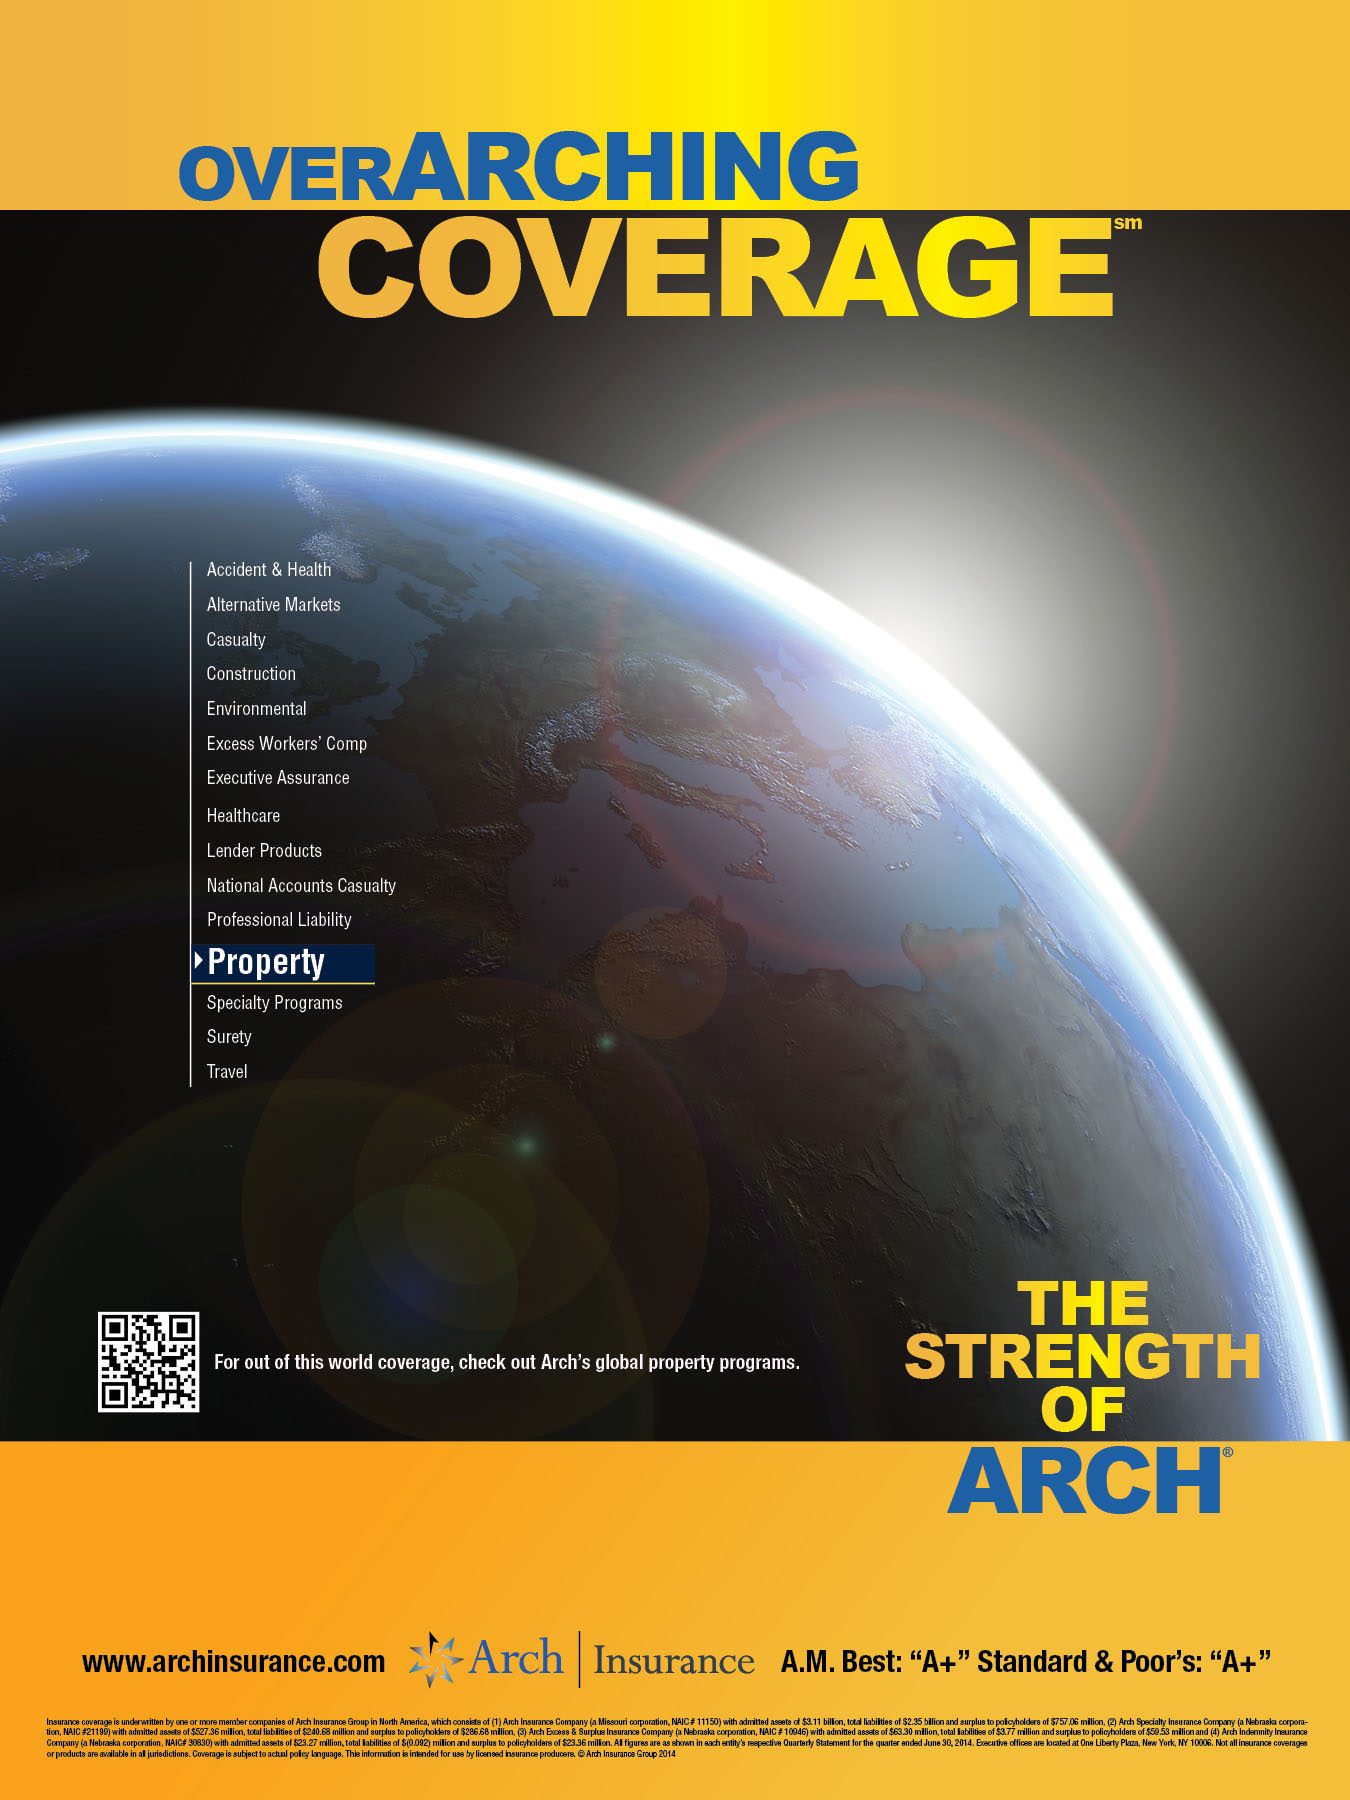 Arch Insurance PRINT-5-Propery 18x14 poster